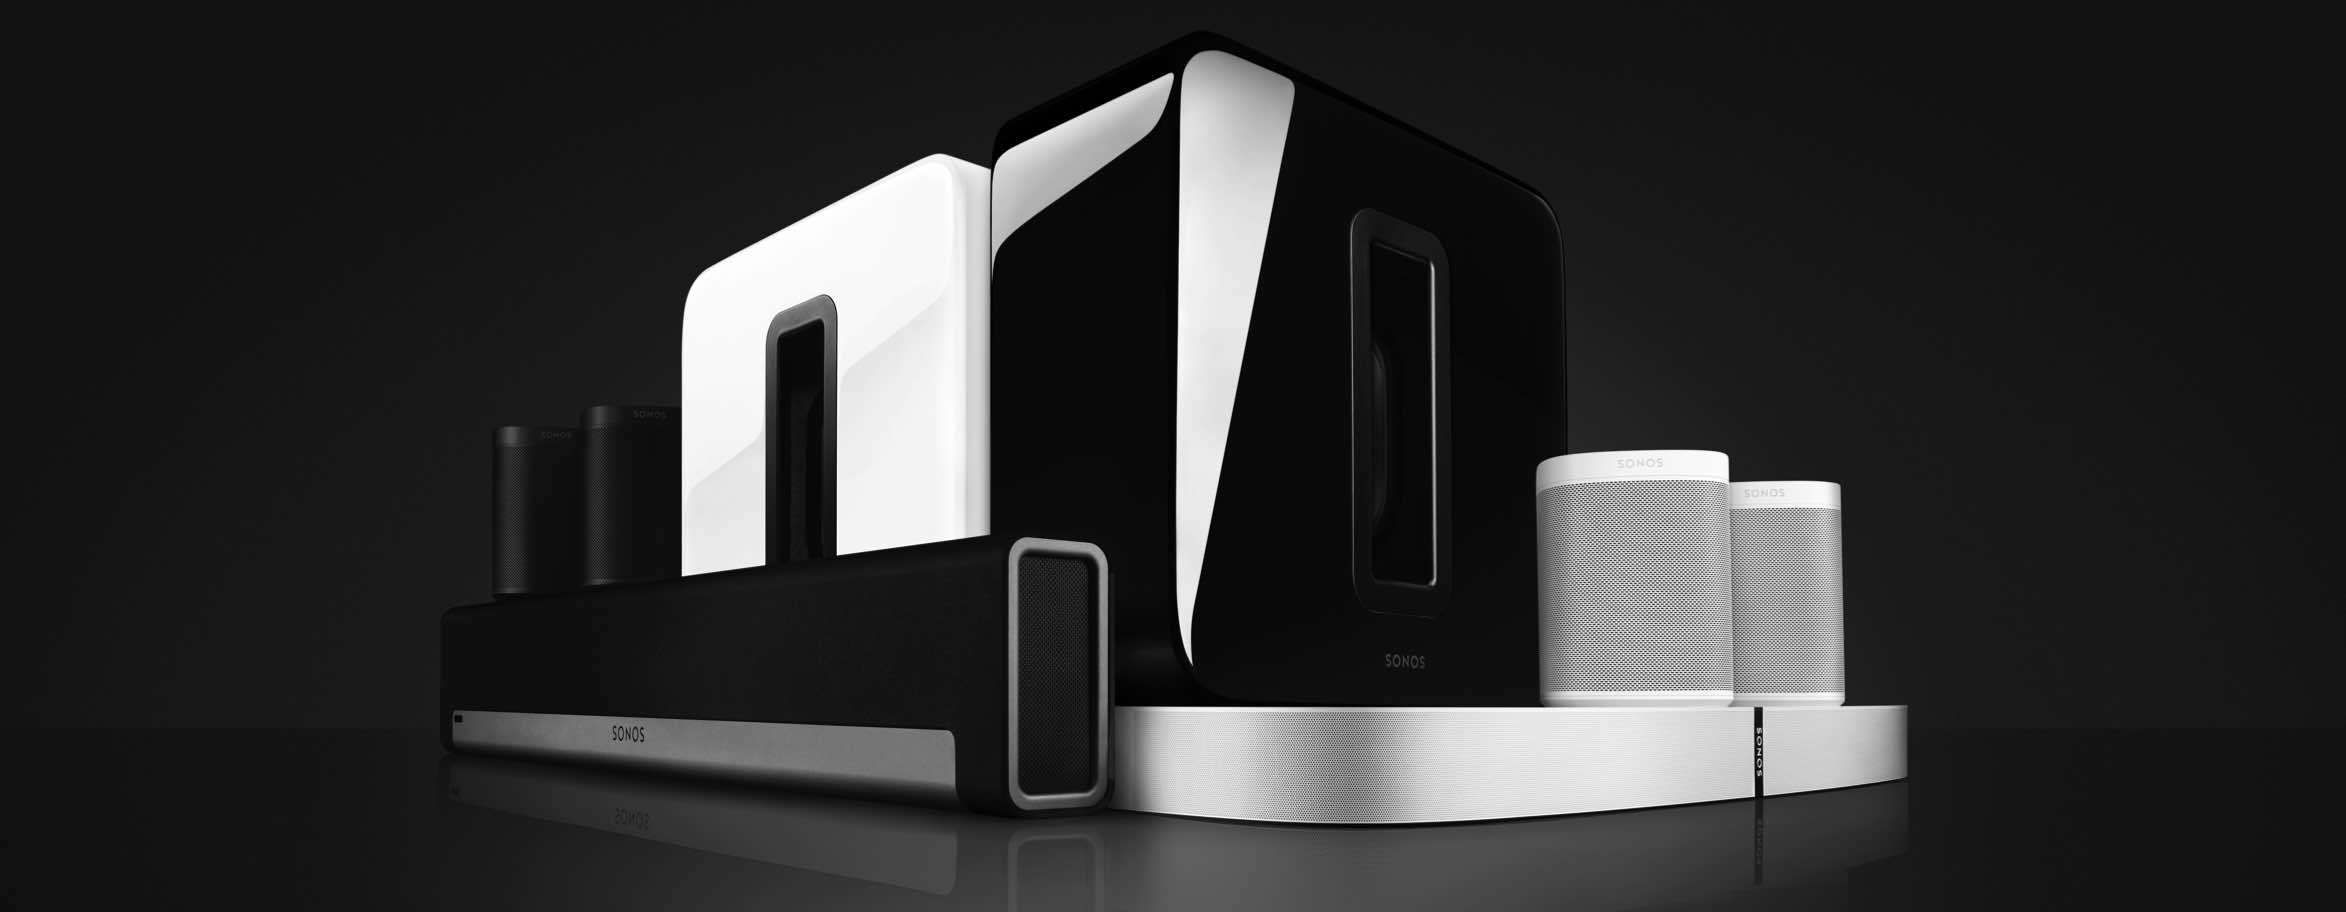 Sonos multiroom speakers